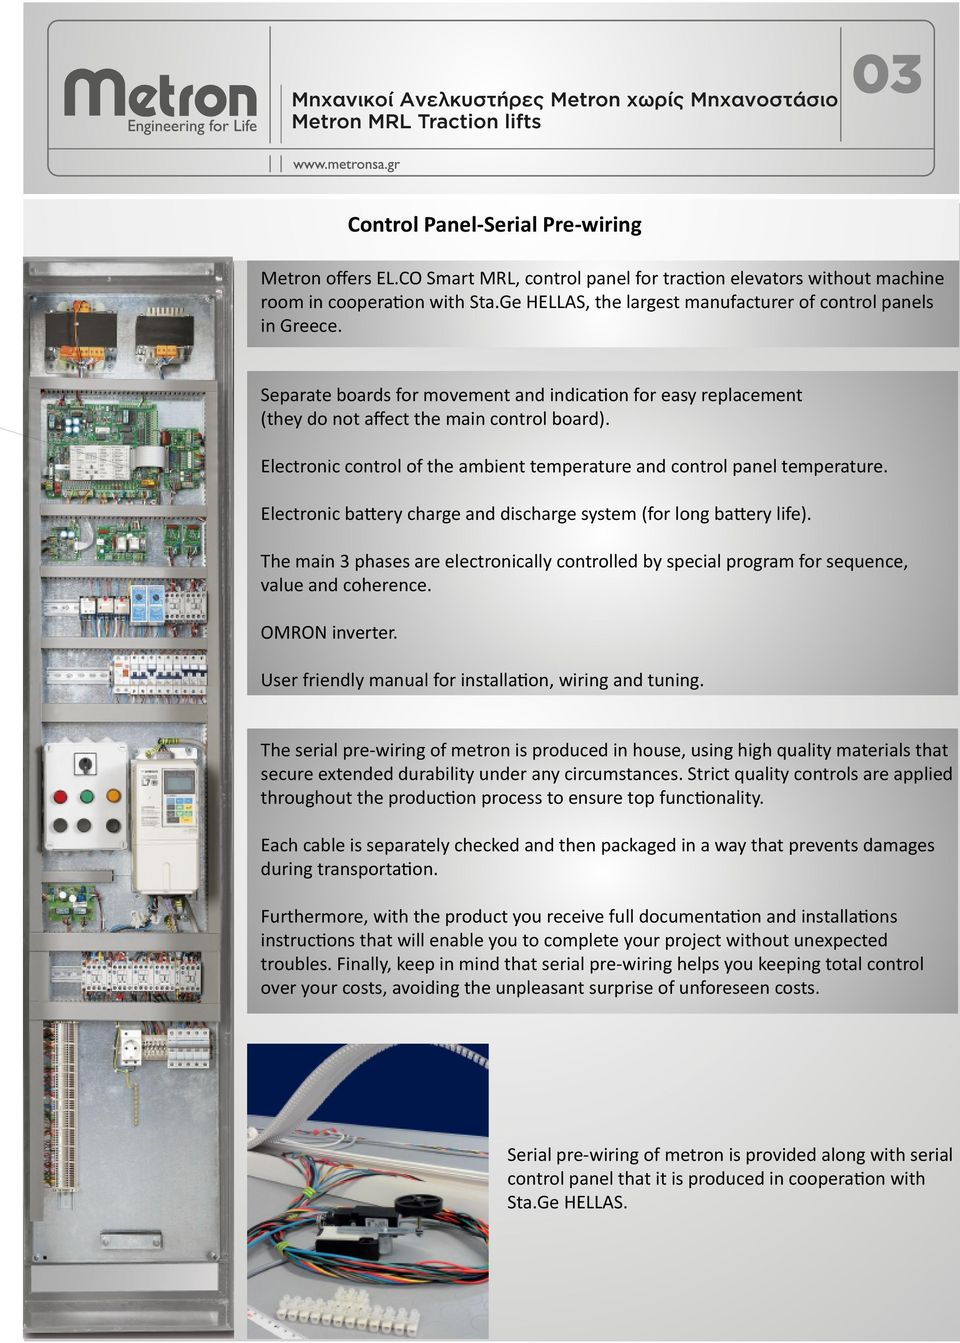 Electronic control of the ambient temperature and control panel temperature. Electronic battery charge and discharge system (for long battery life).